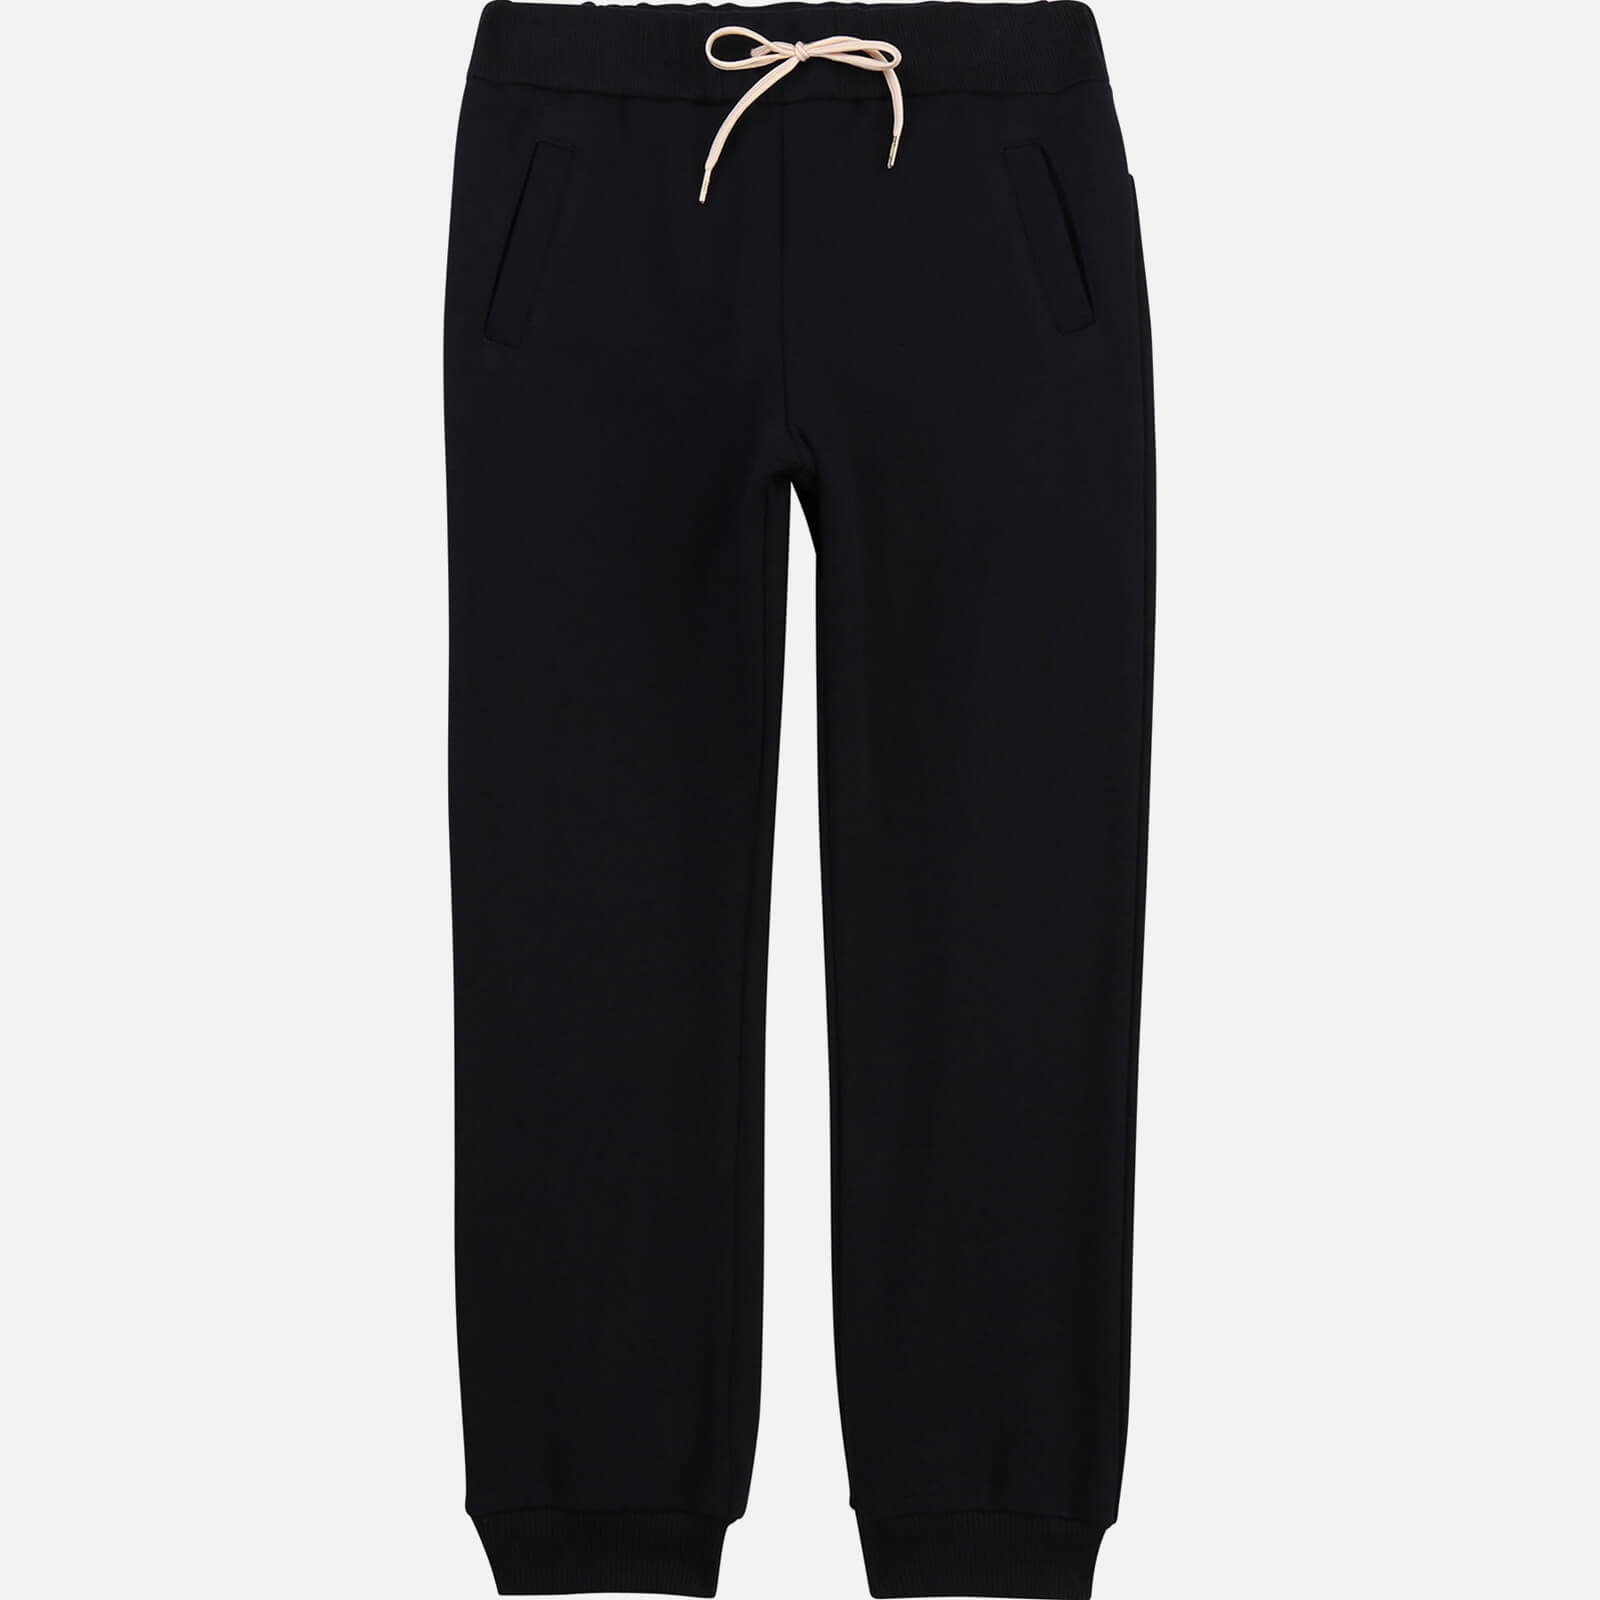 Chloé Girls' Sweatpant Trousers - Navy - 5 Years